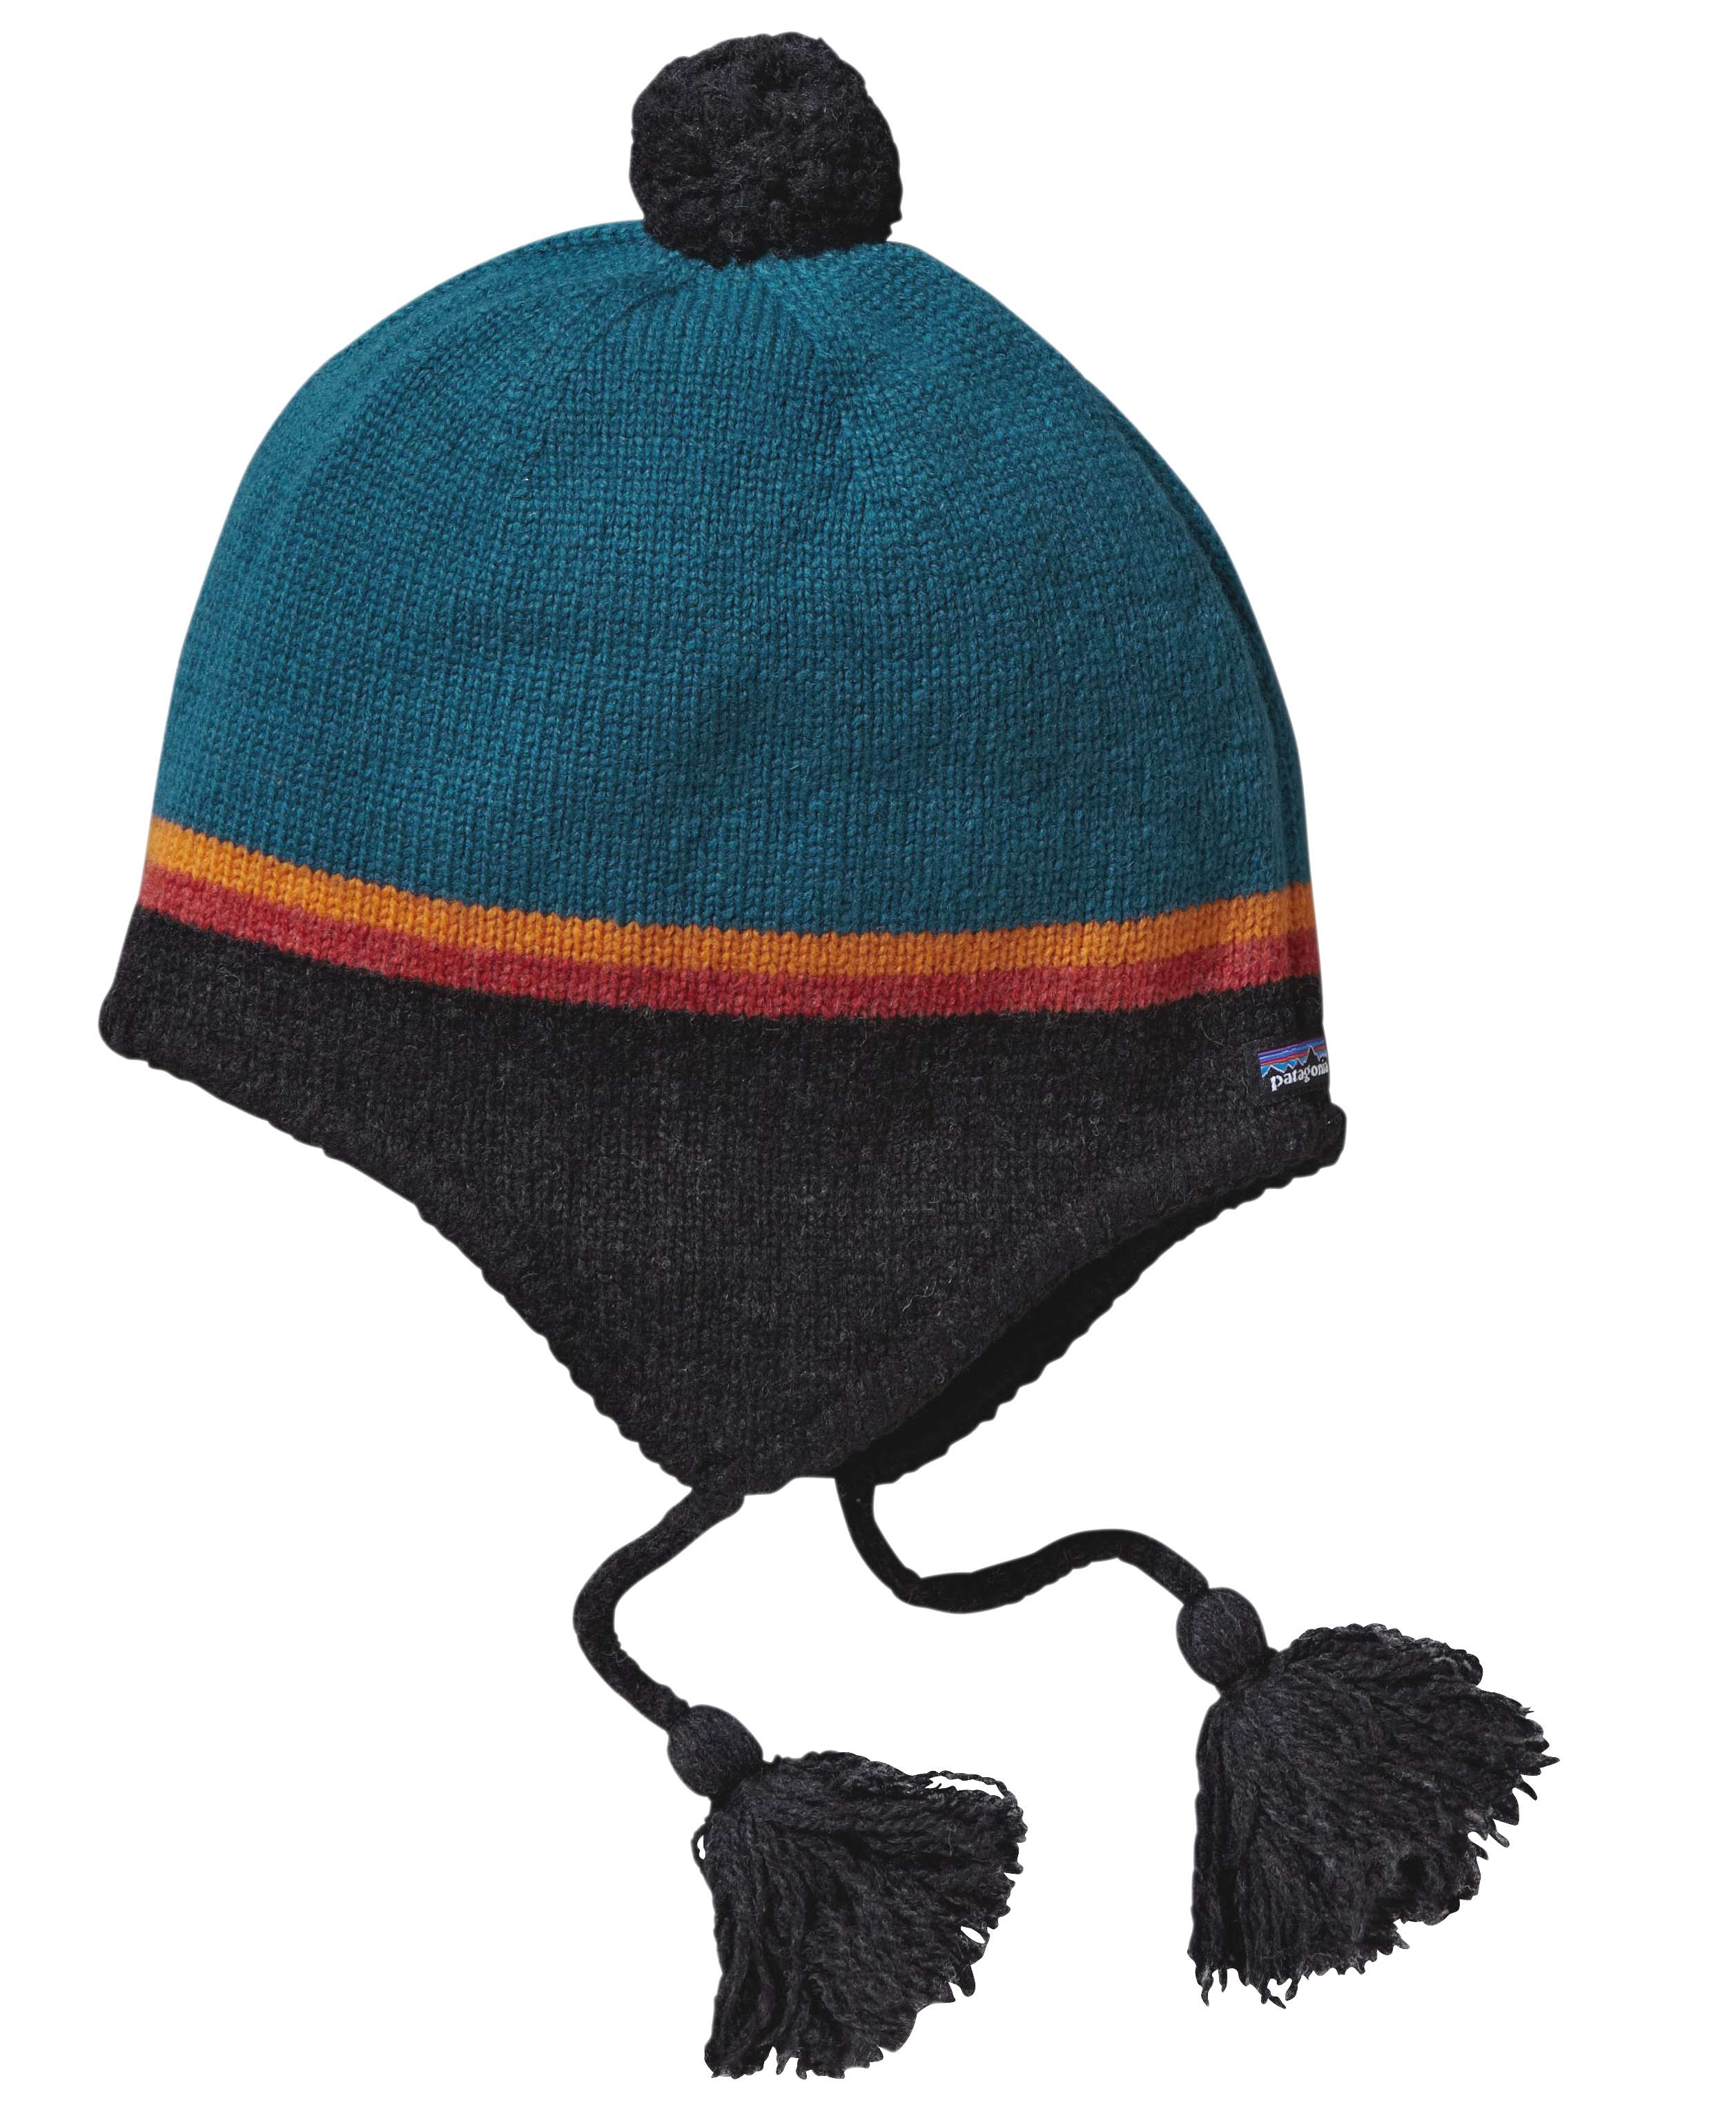 Patagonia Wooly Hat - Children to Youths 8742dc93918